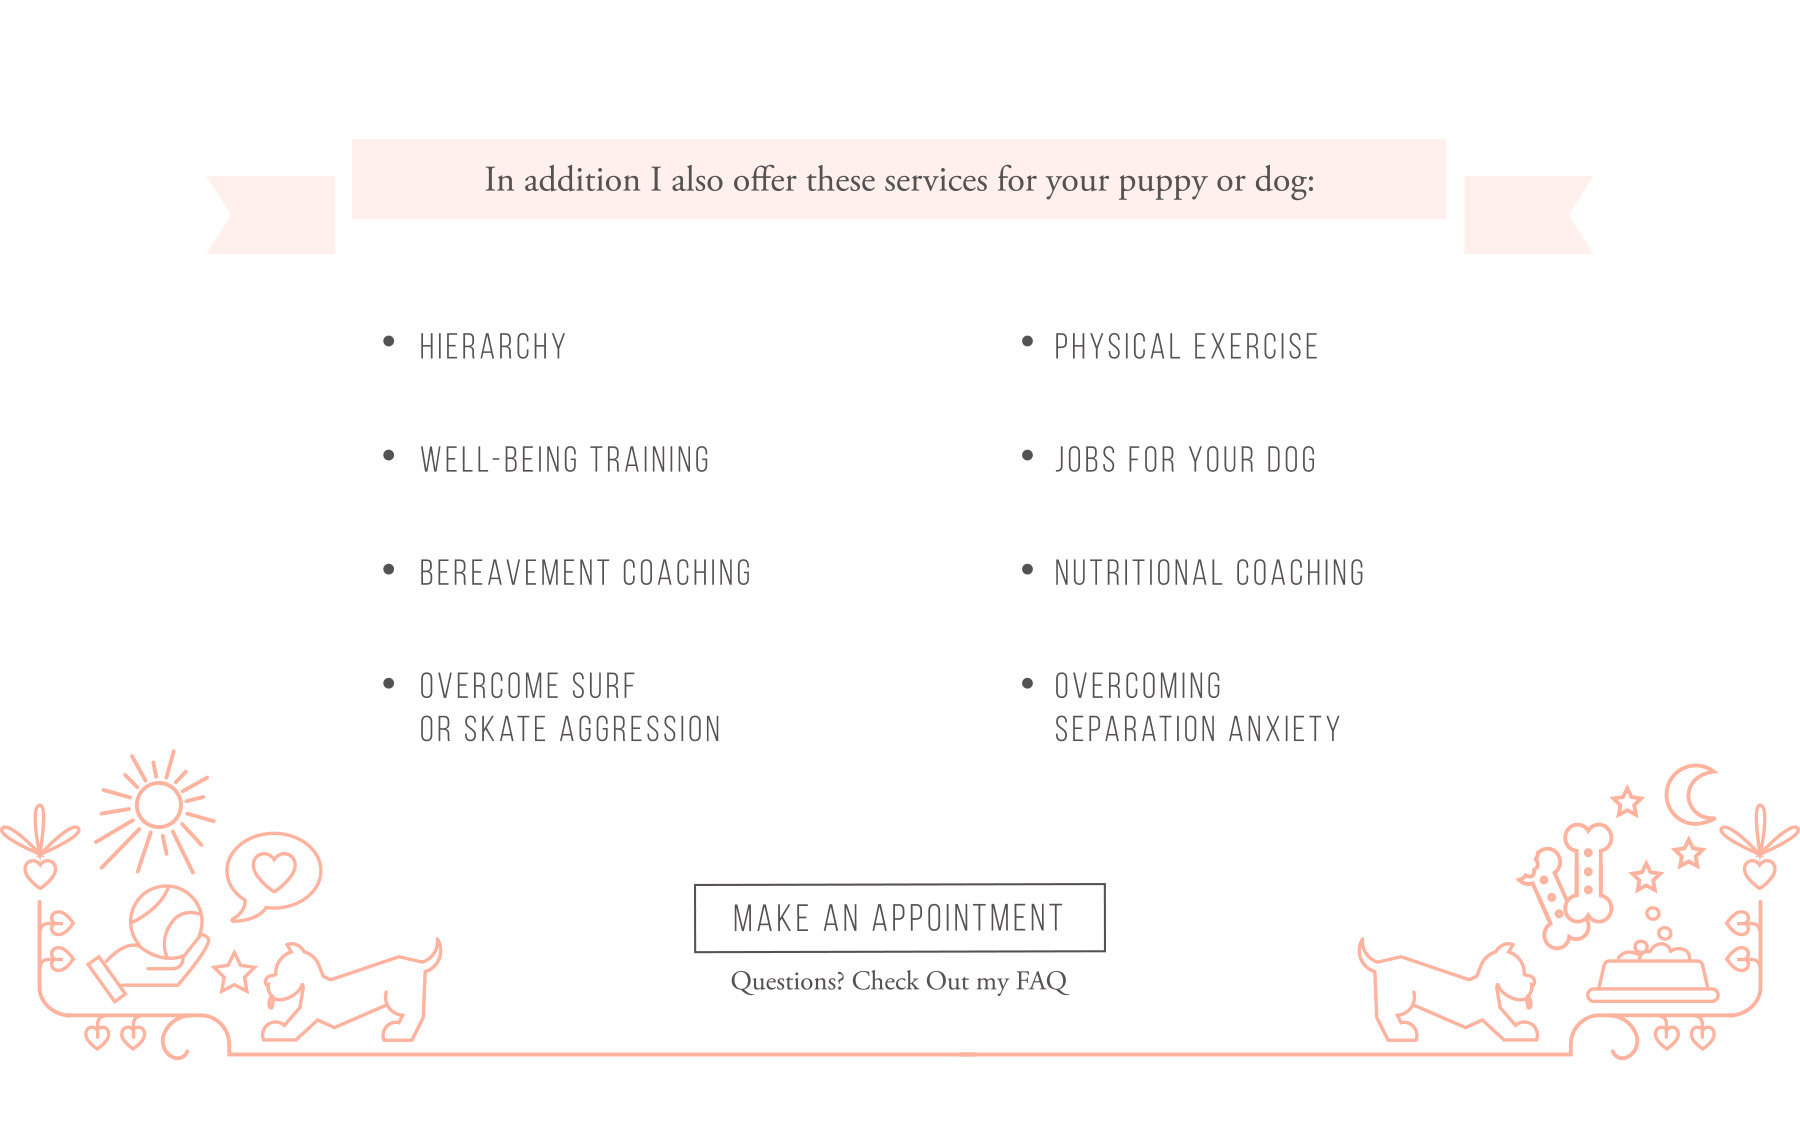 Dog services listing with cute puppy boarder